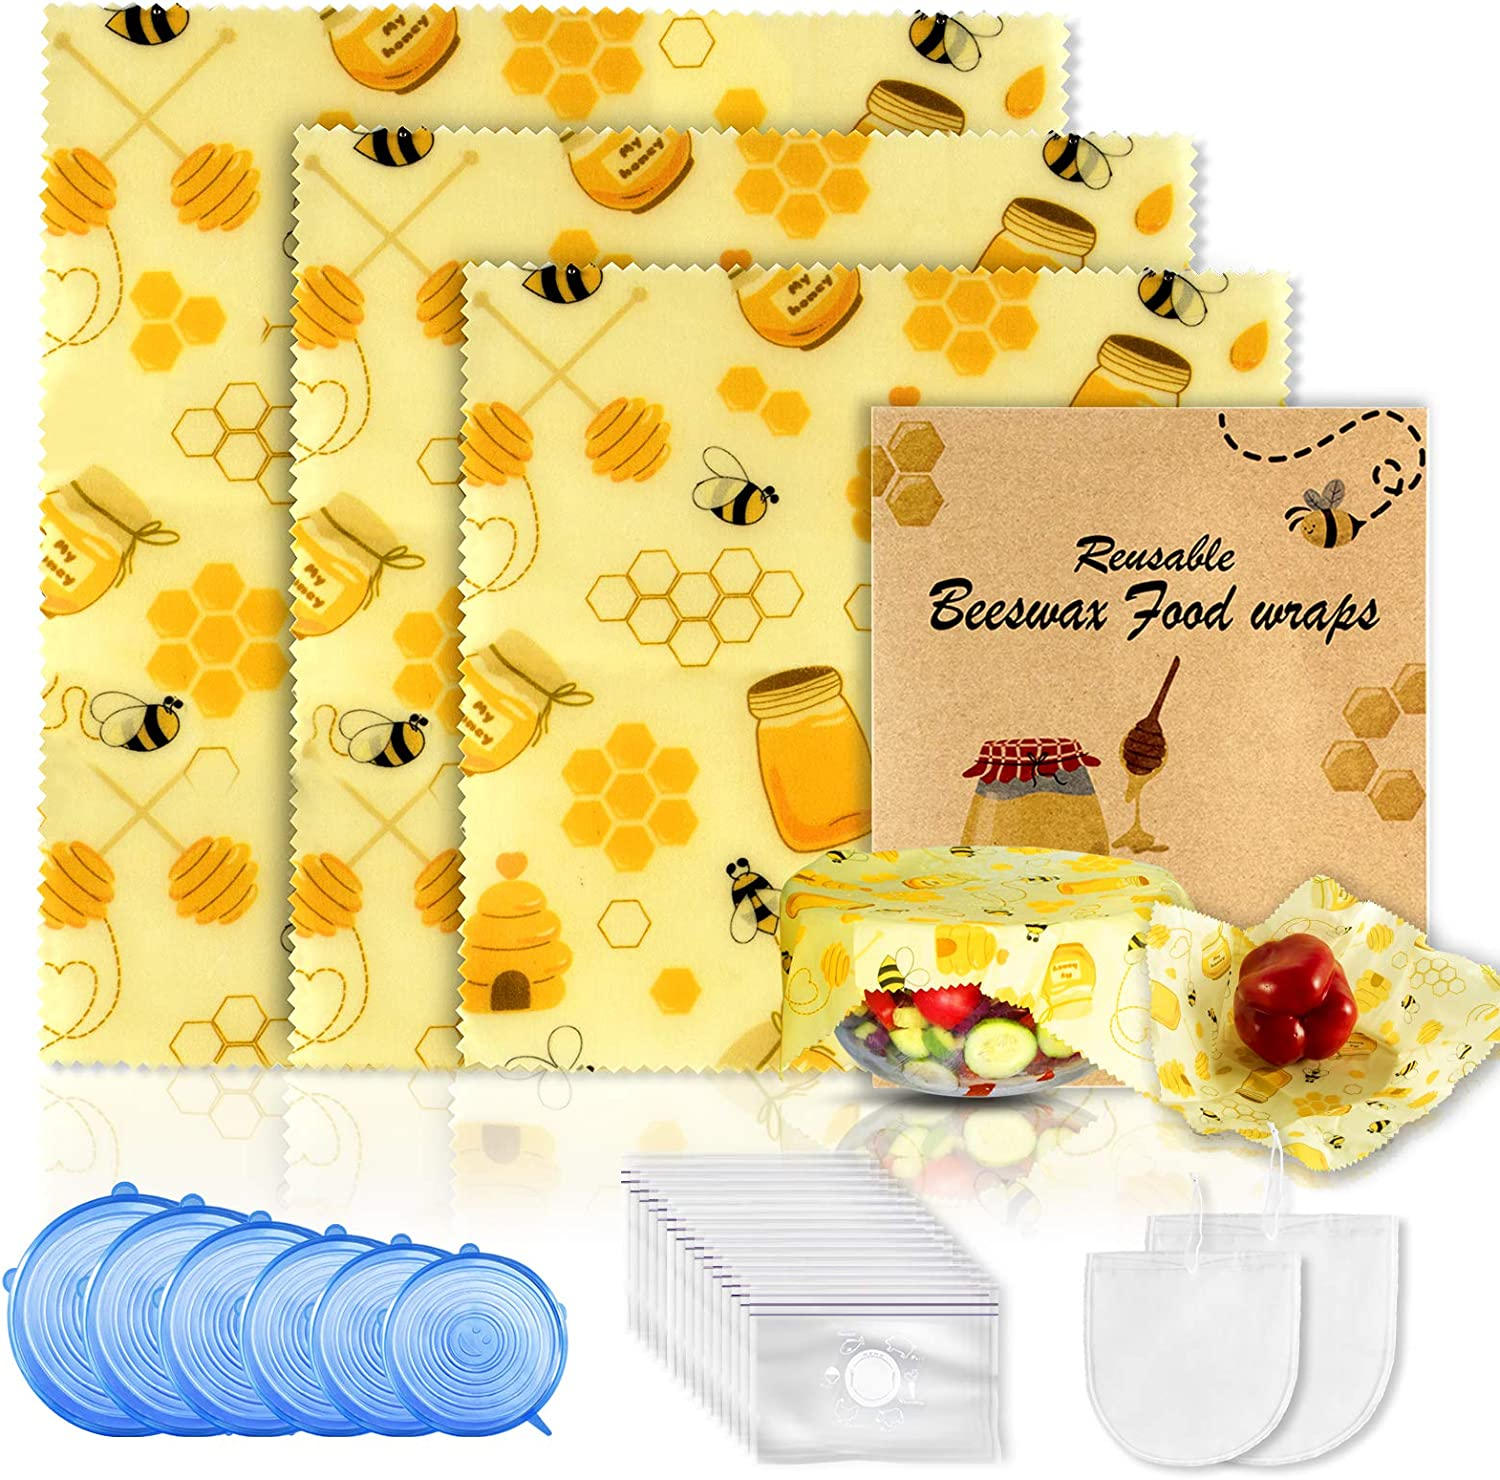 28 Pack Beeswax Wrap & Reusable Food Storage Bag & Silicone Stretch Lids,Eco-Friendly Freezer Preservation Bags for Vegetable,Fruit,Snack,Lunch,Cereals.